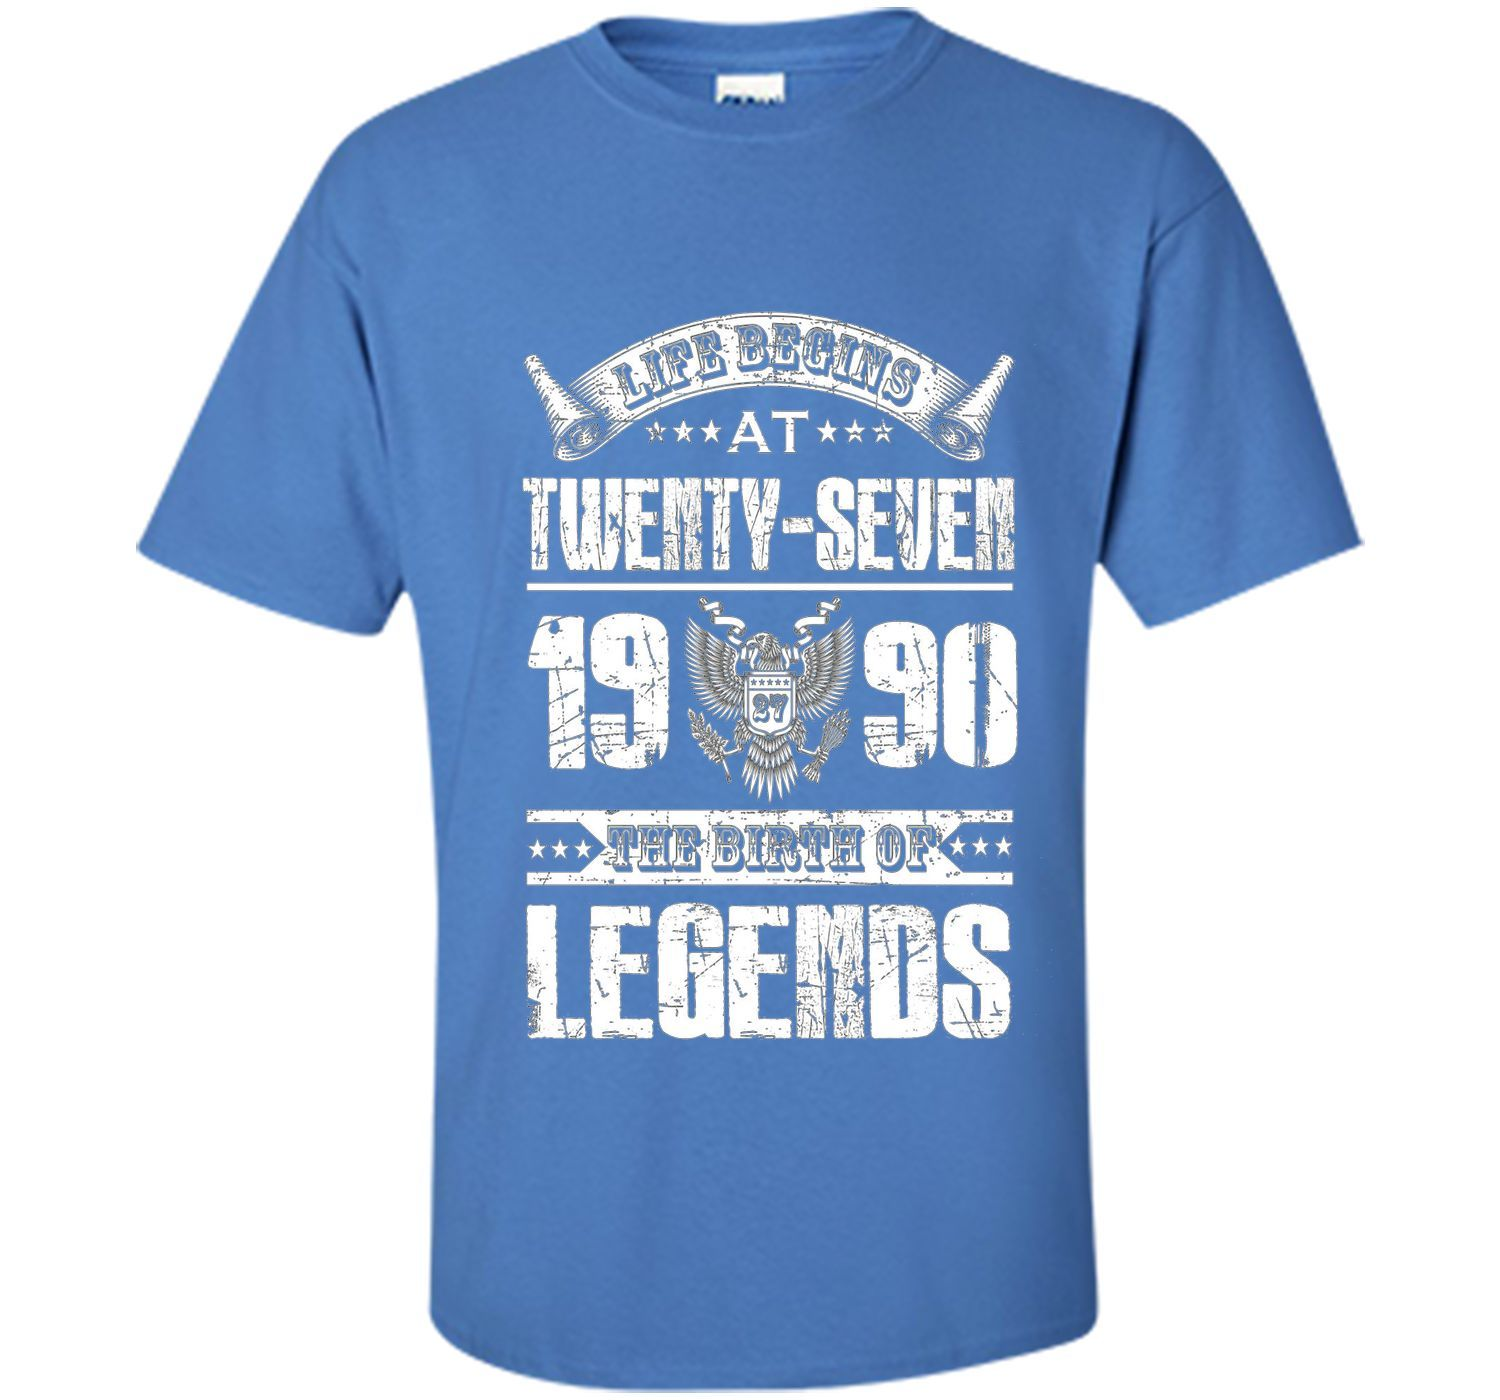 Life begins at 27, 1990 the birth of legends- 1990 T Shirt shirt